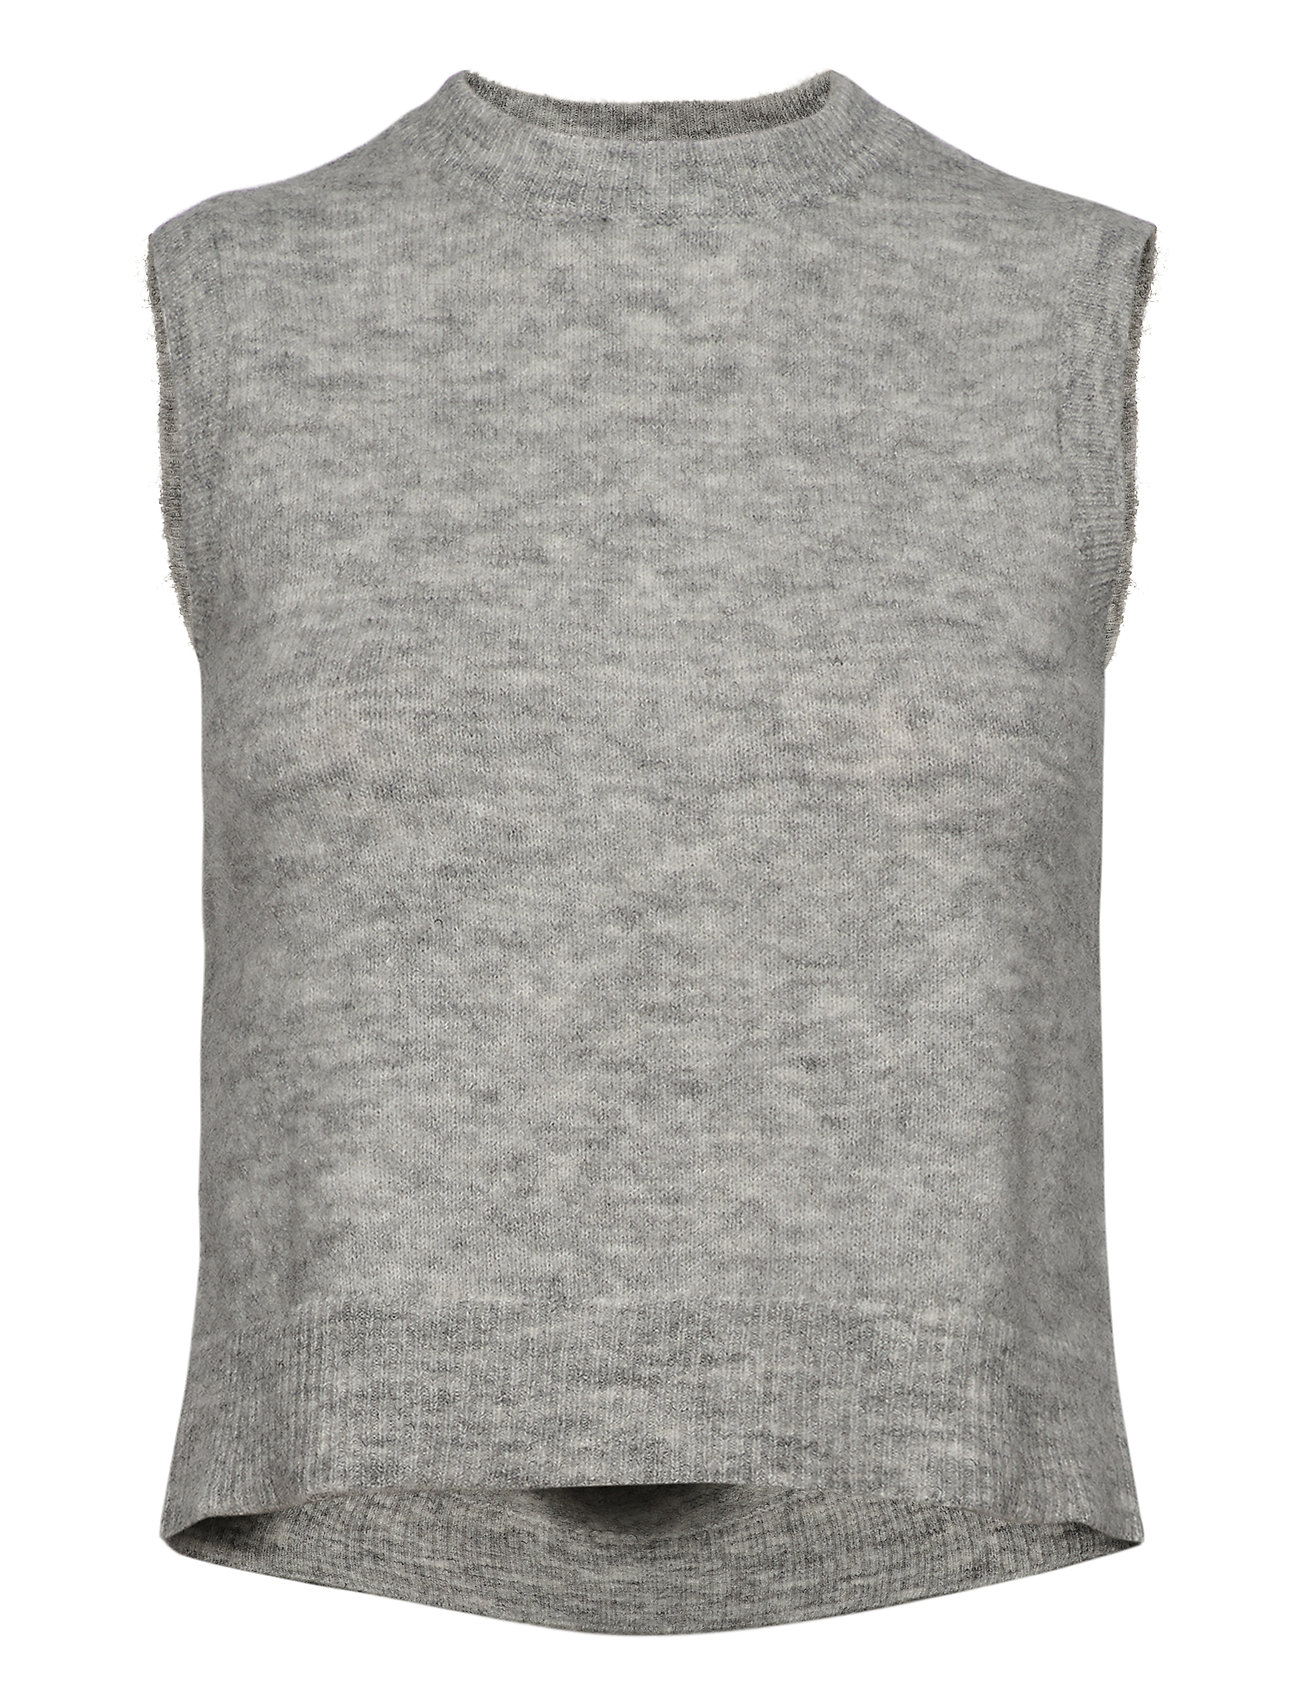 Image of Enbobo West 5125 Vests Knitted Vests Grå Envii (3473871289)